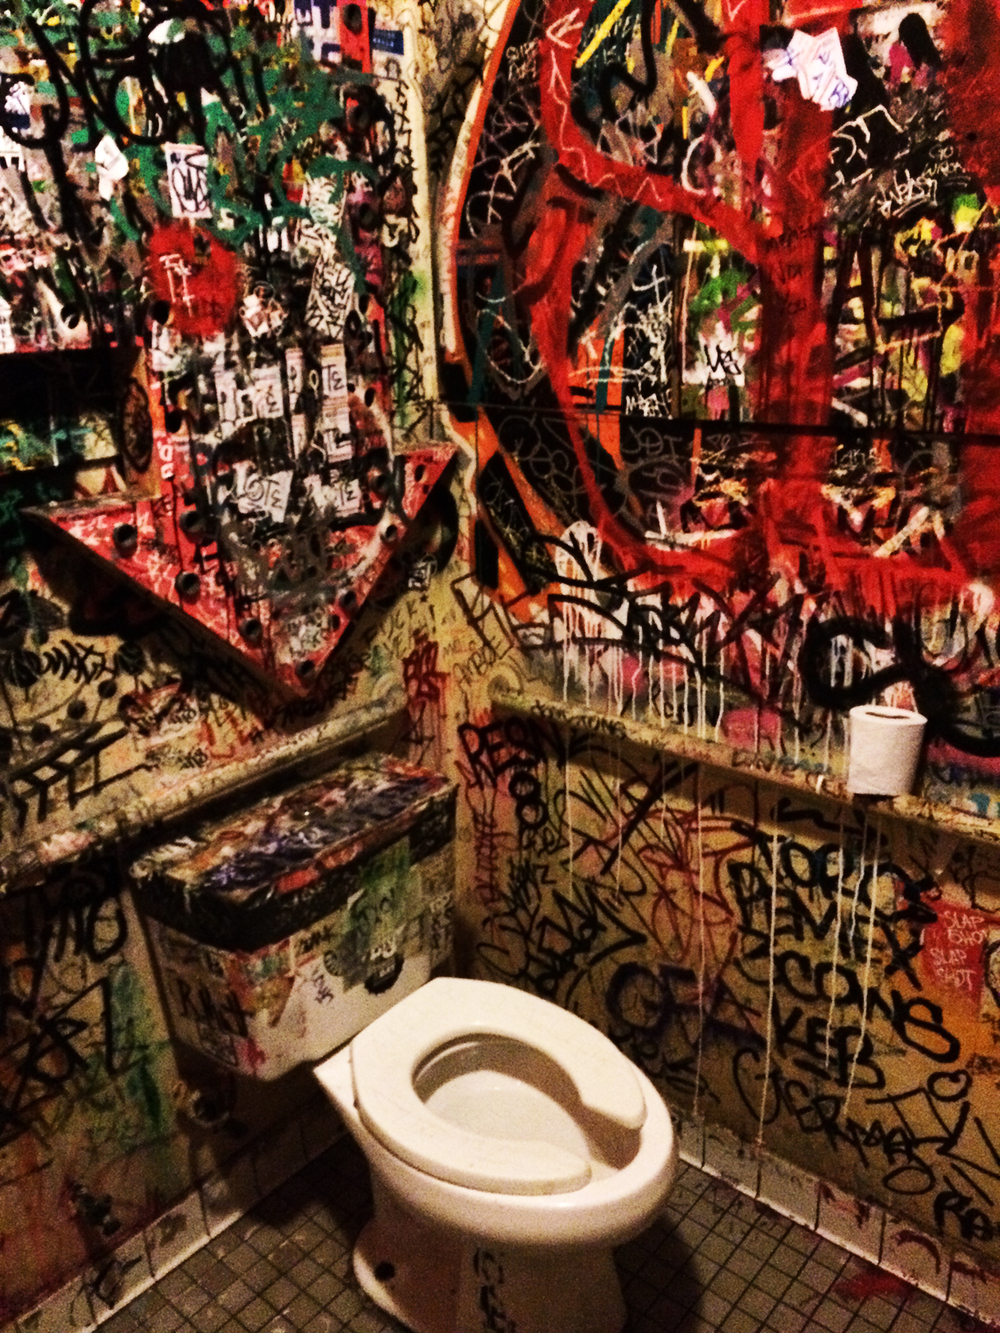 Grafitti-toilet-1920.jpg